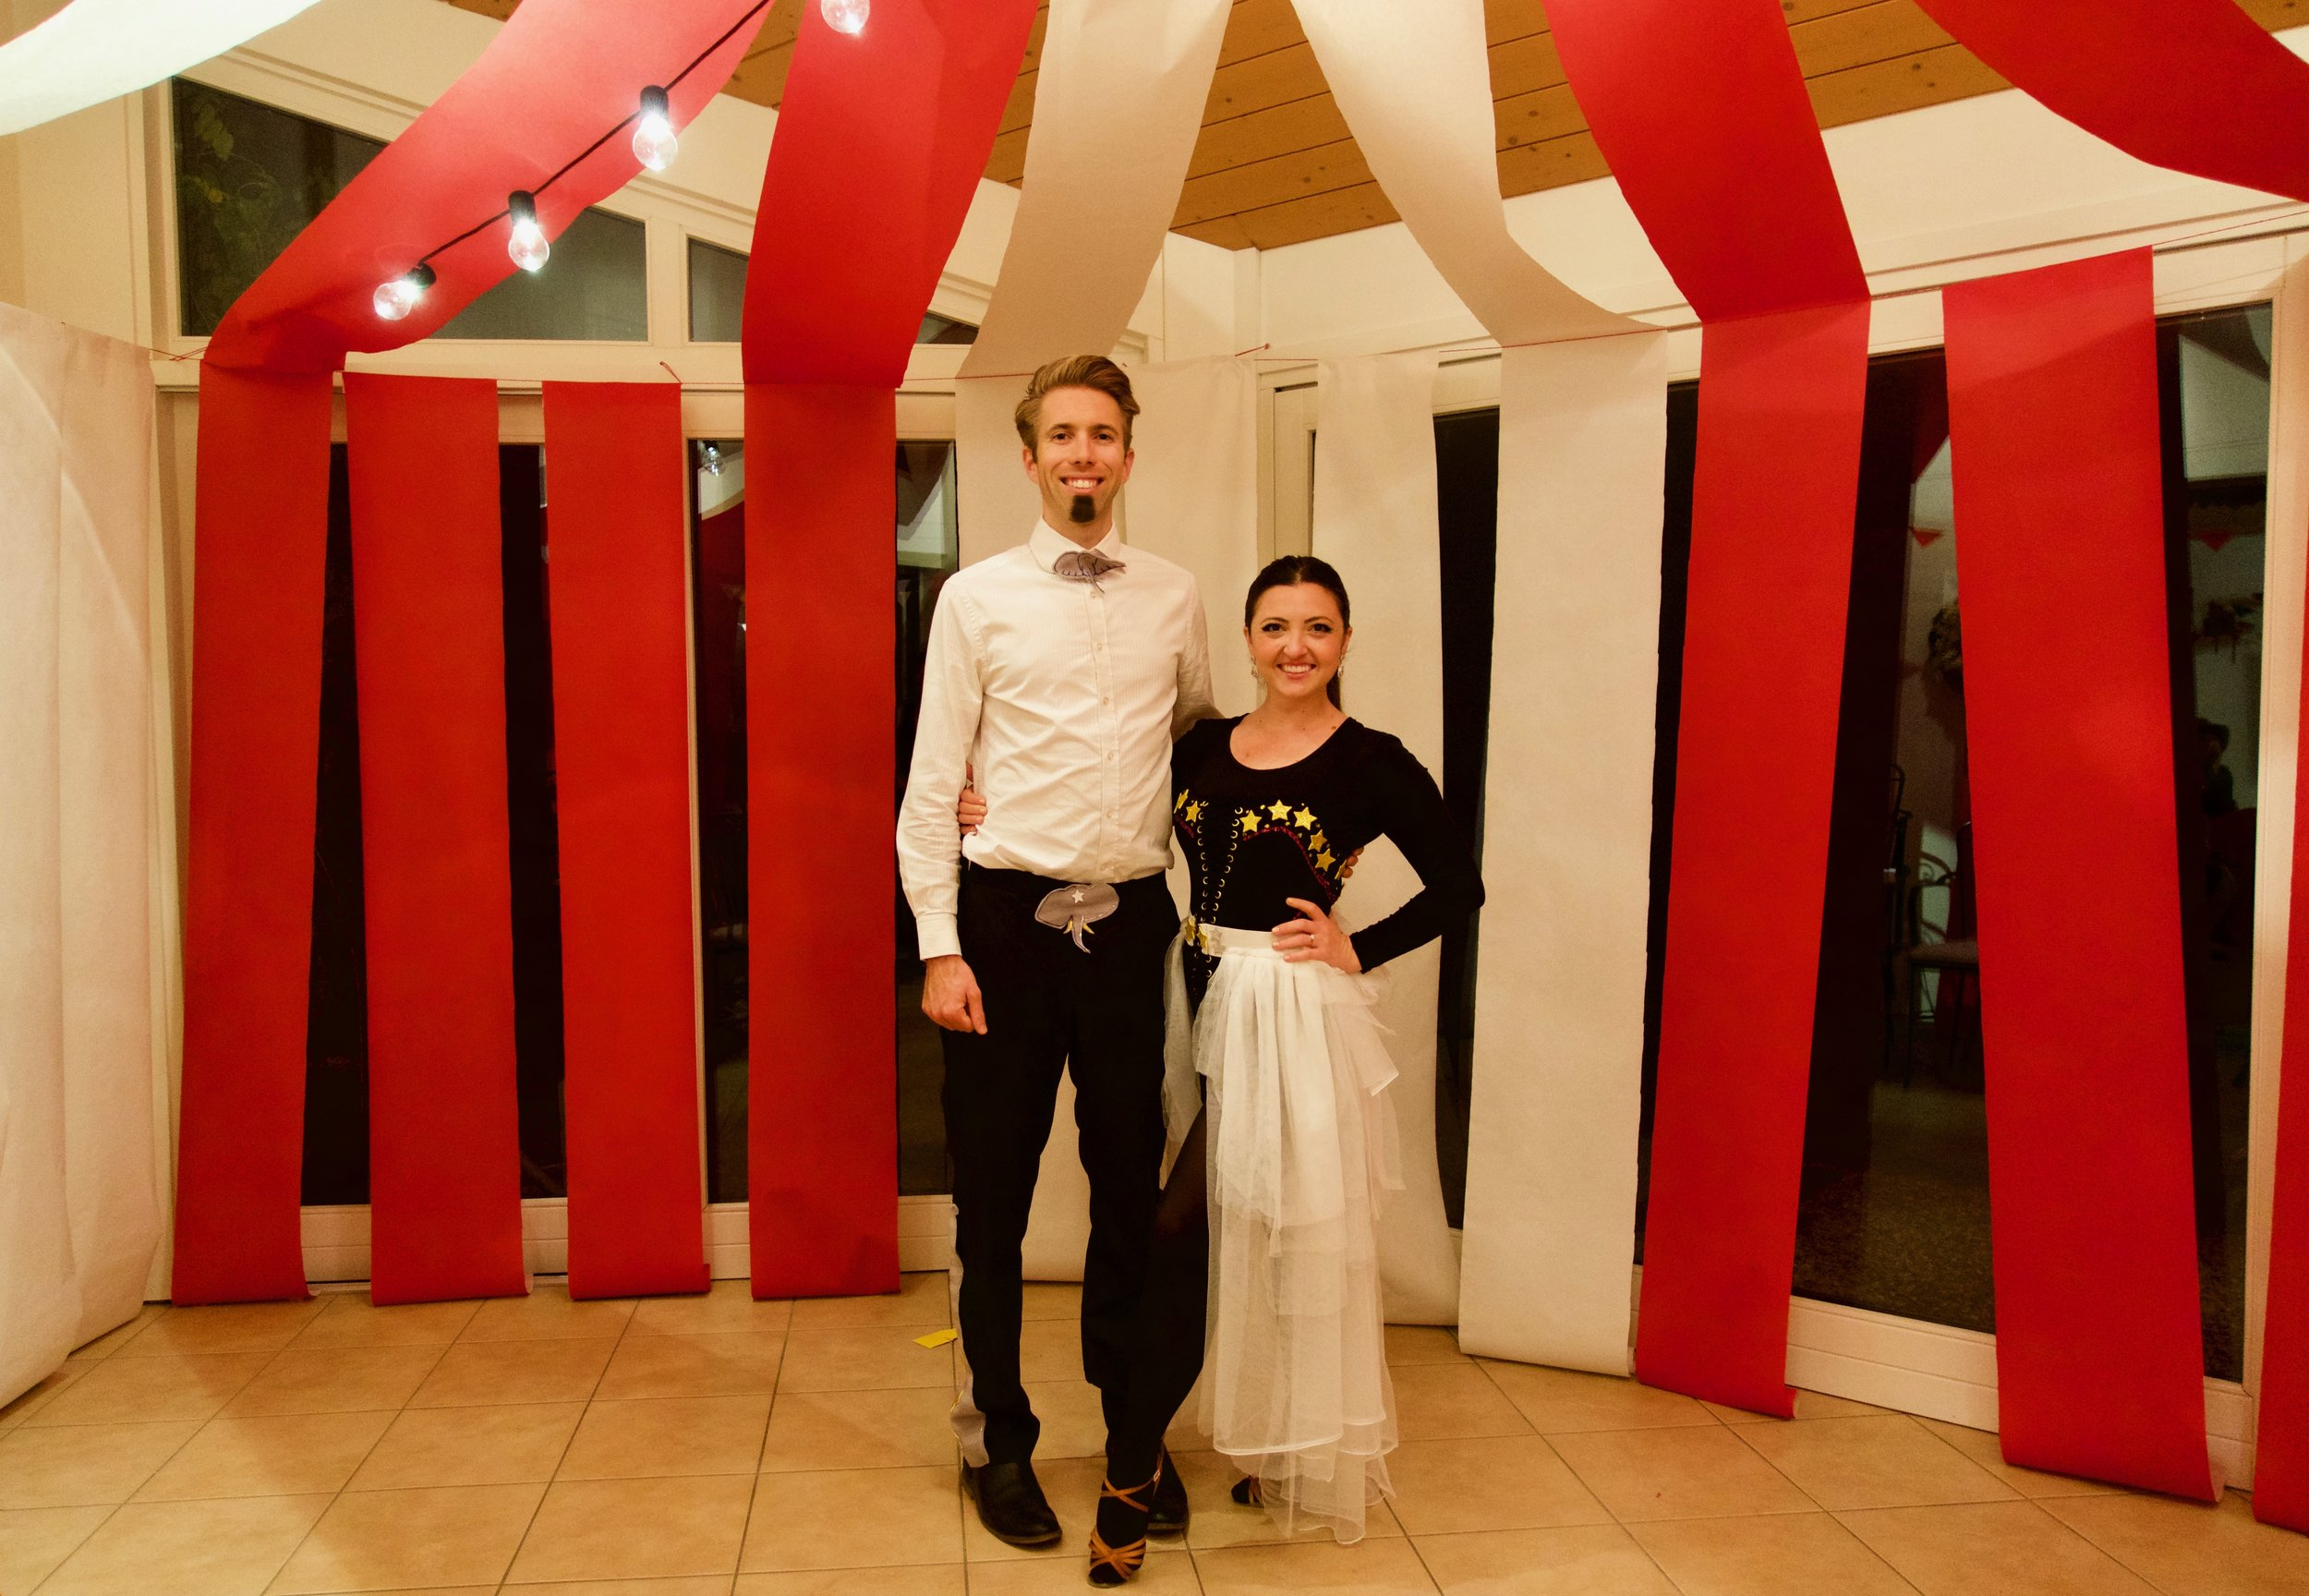 Circus Murder Mystery Party Couples Costume